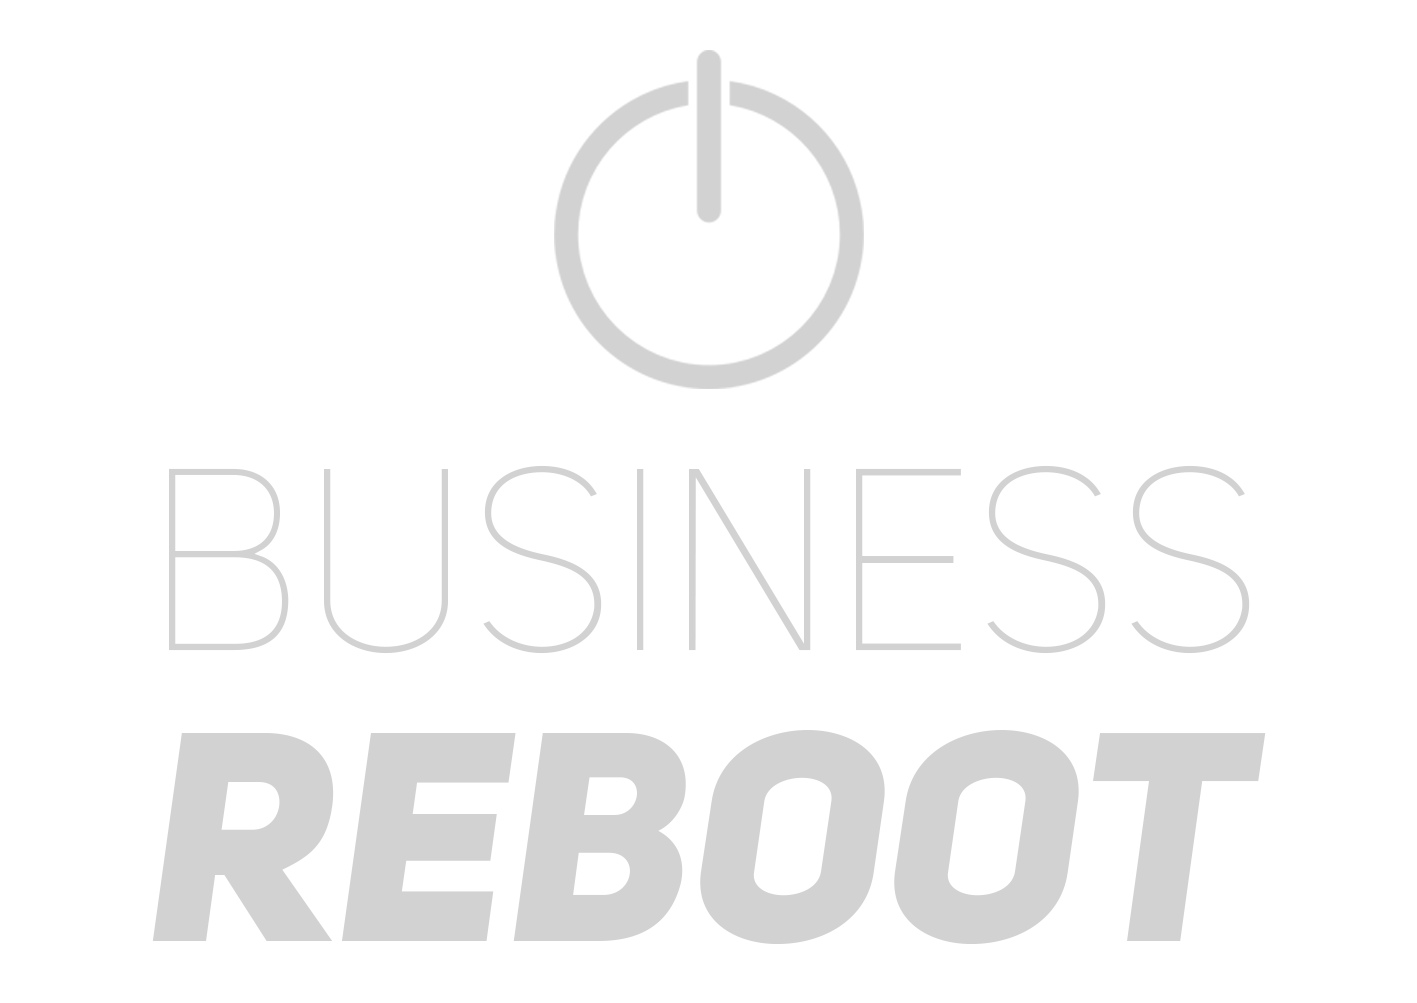 business reboot logo.png